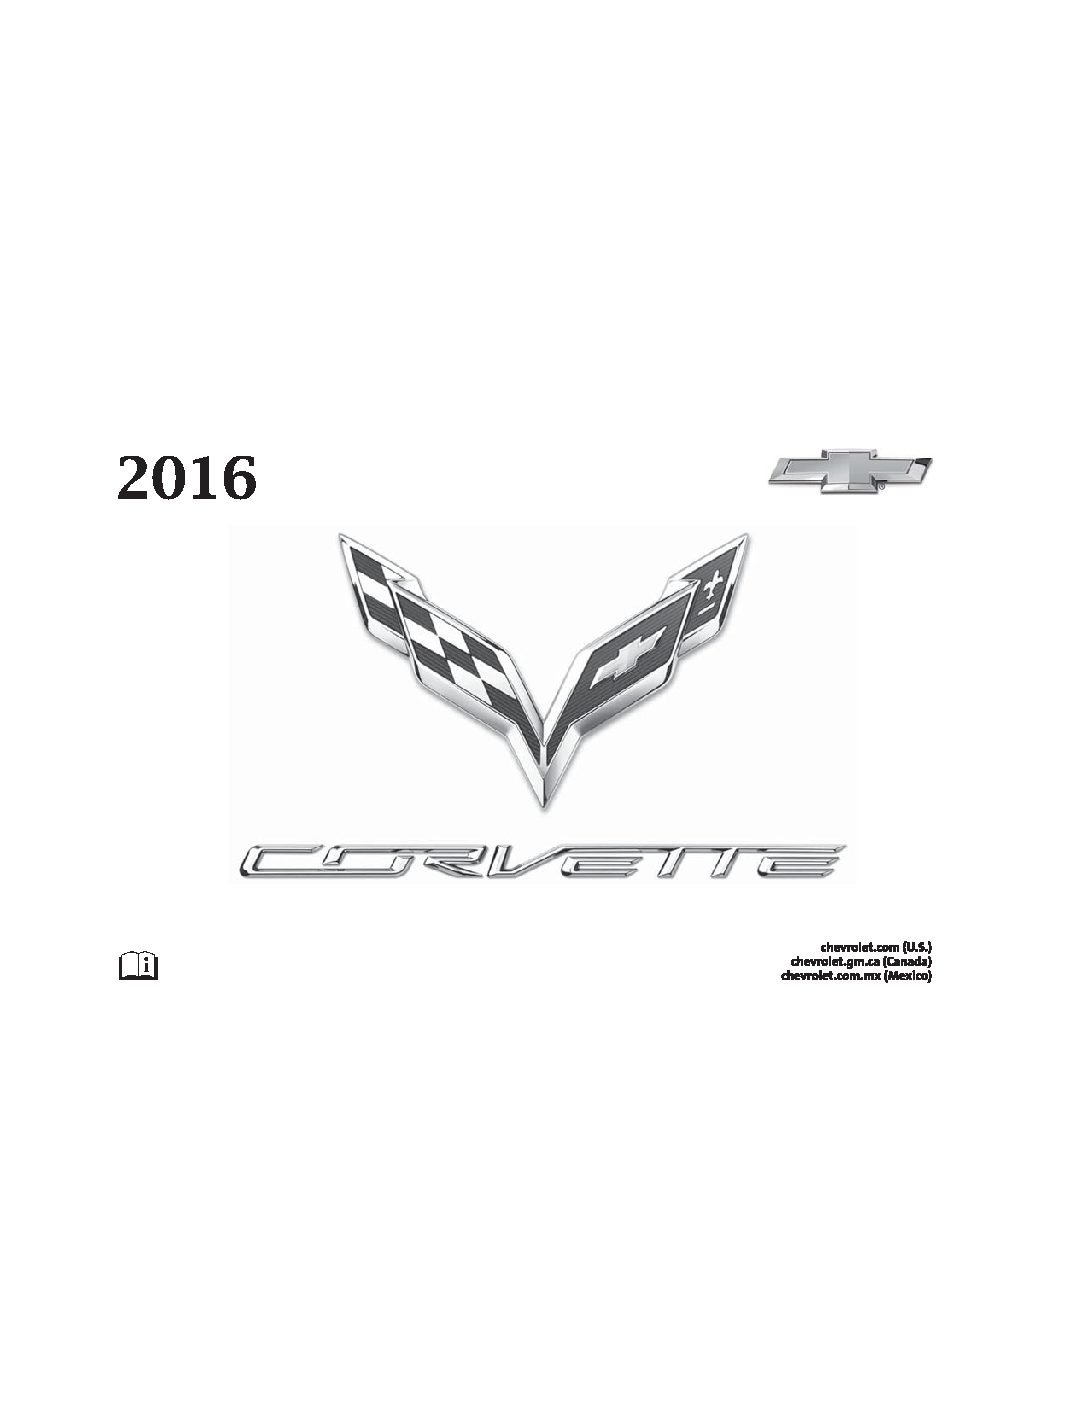 2016 chevrolet corvette owners manual just give me the damn manual rh justgivemethedamnmanual com corvette owners manual 2001 corvette owners manual 2015